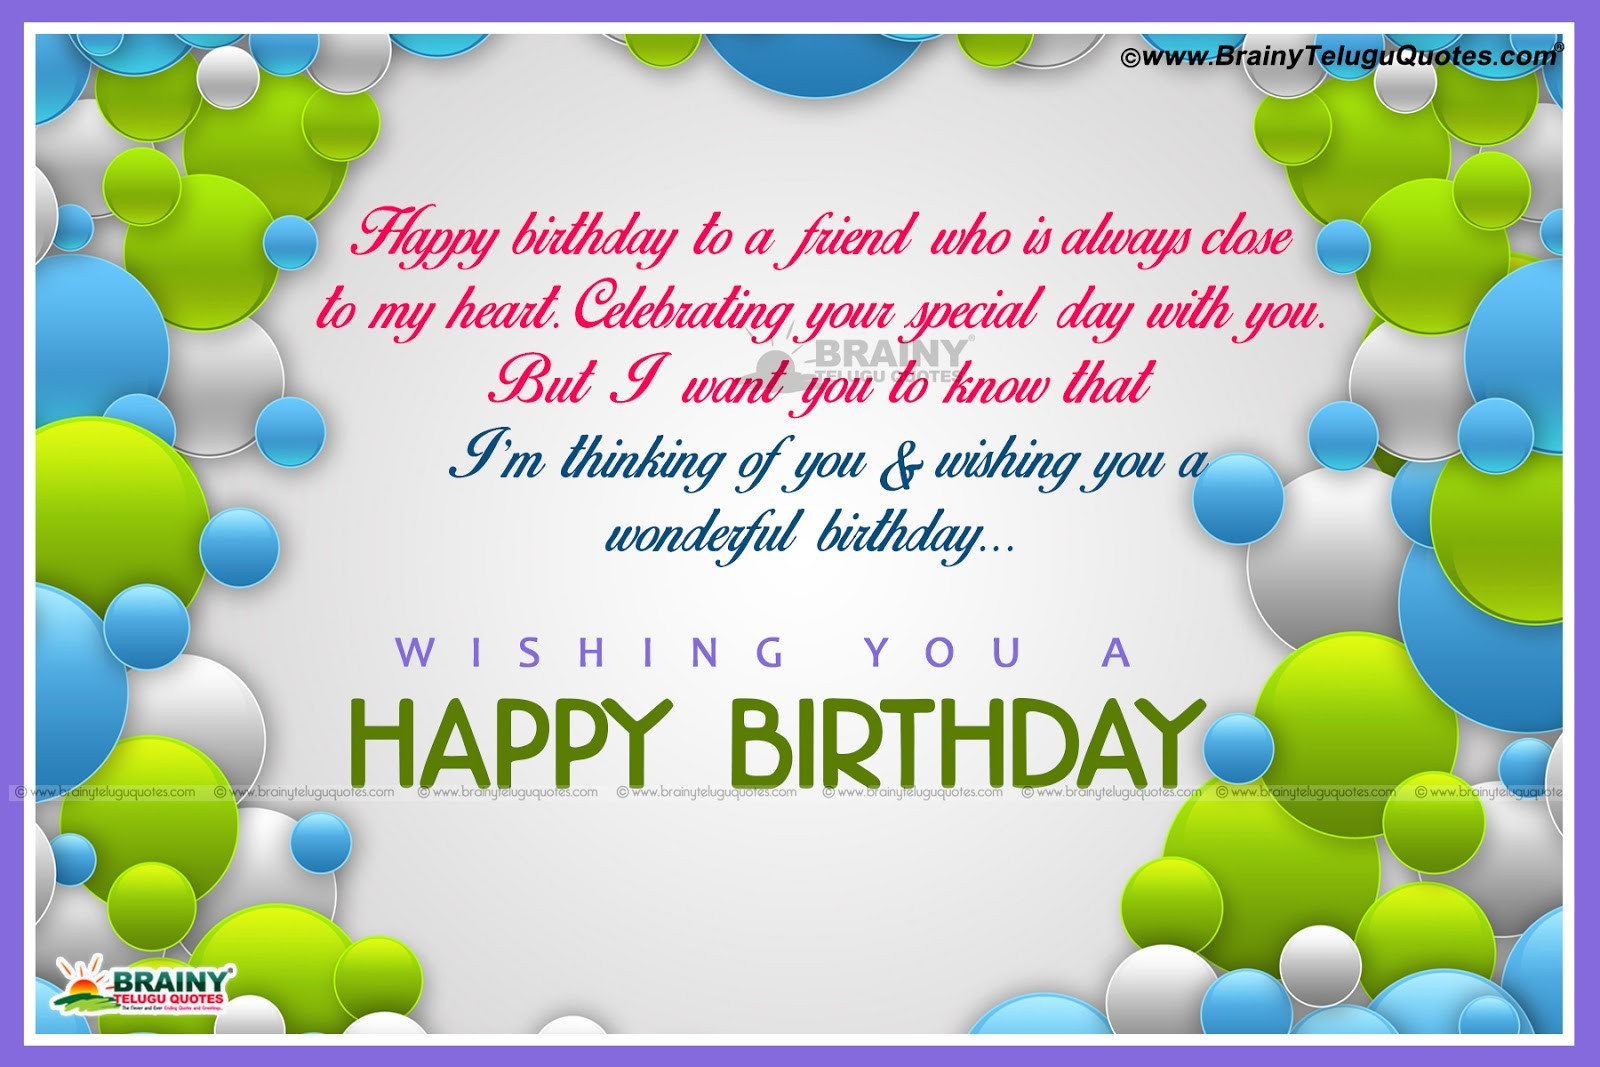 happy birthday to me message quotes ; happy-birthday-quote-for-friend-luxury-birthday-message-in-english-language-happy-birthday-different-of-happy-birthday-quote-for-friend